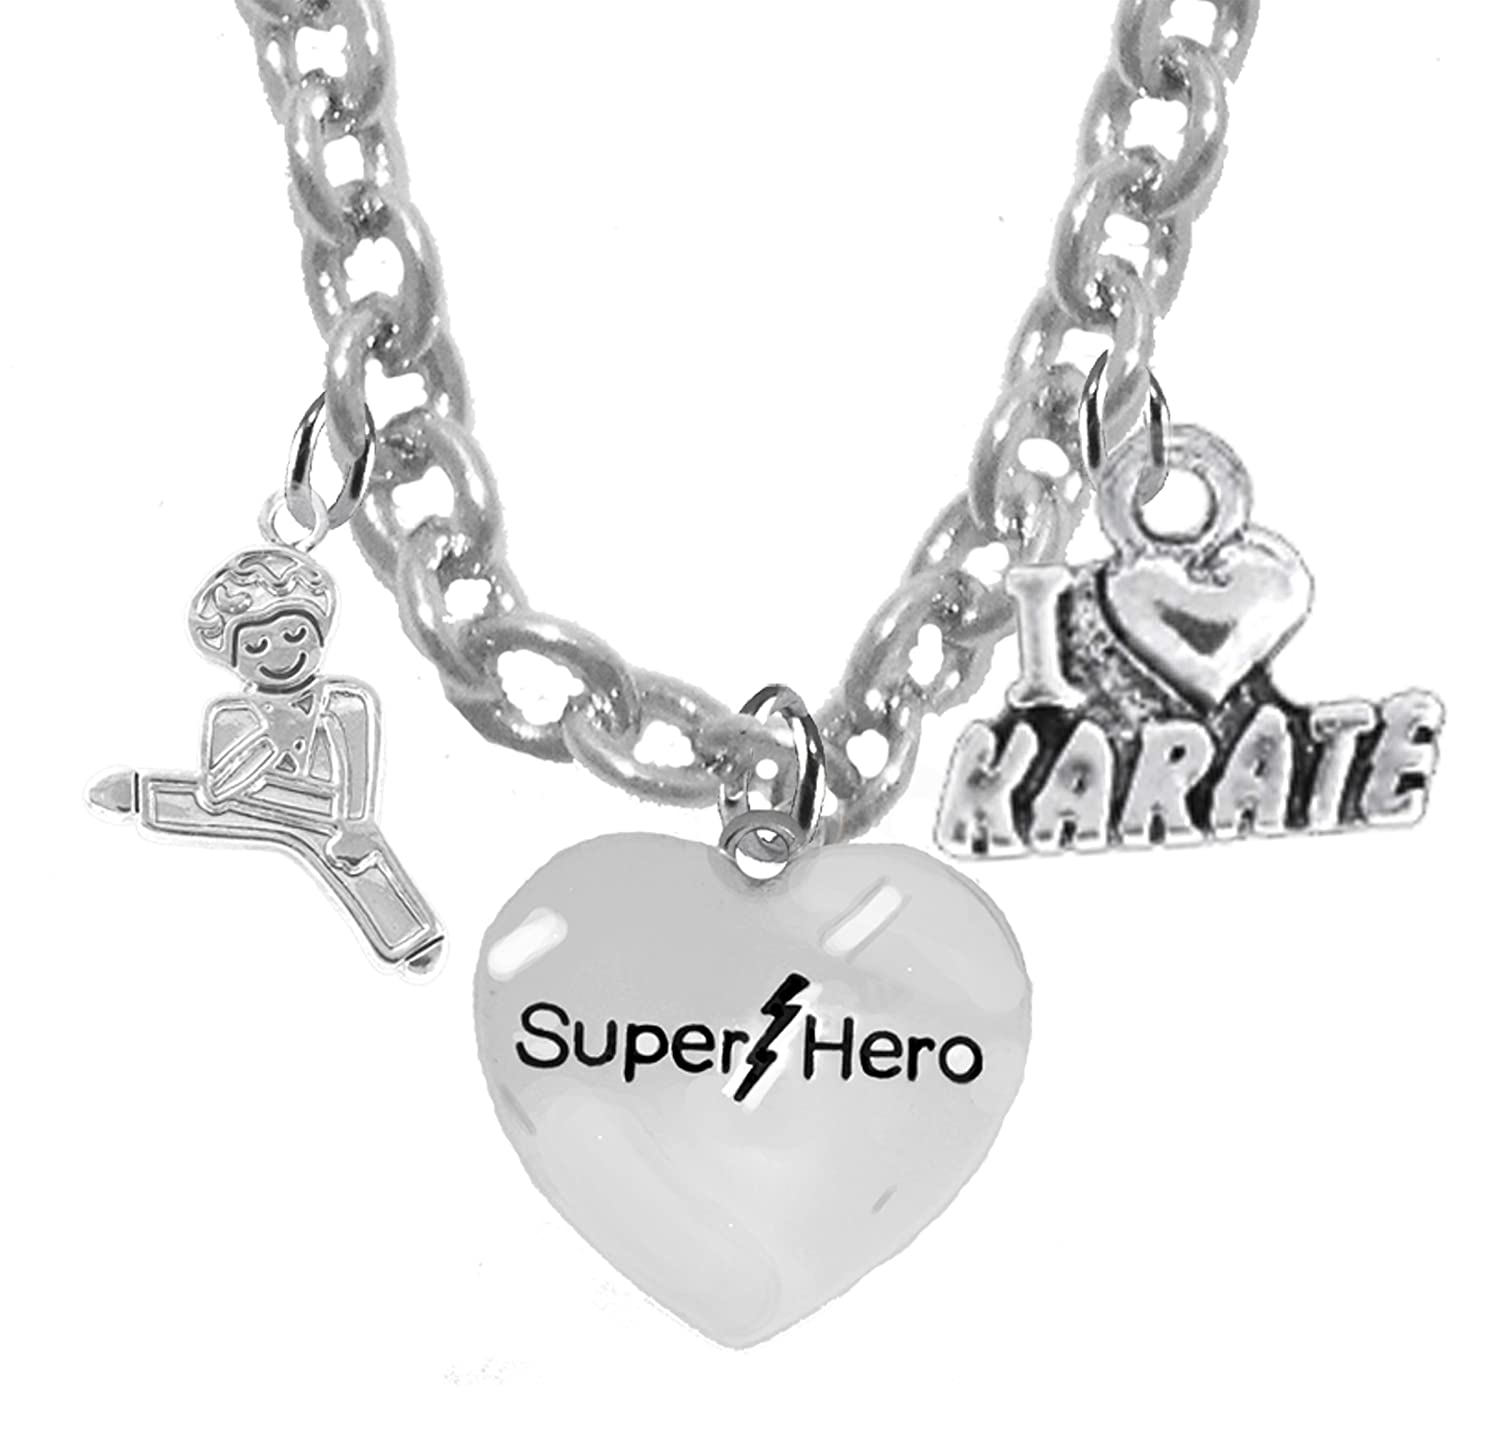 Hypoallergenic Cardinali/® Jewelry Childrens Martial Arts Karate Jewelry Kickboxing Childrens Safe-Nickel Lead And Cadmium Free Super Hero Adjustable Necklace